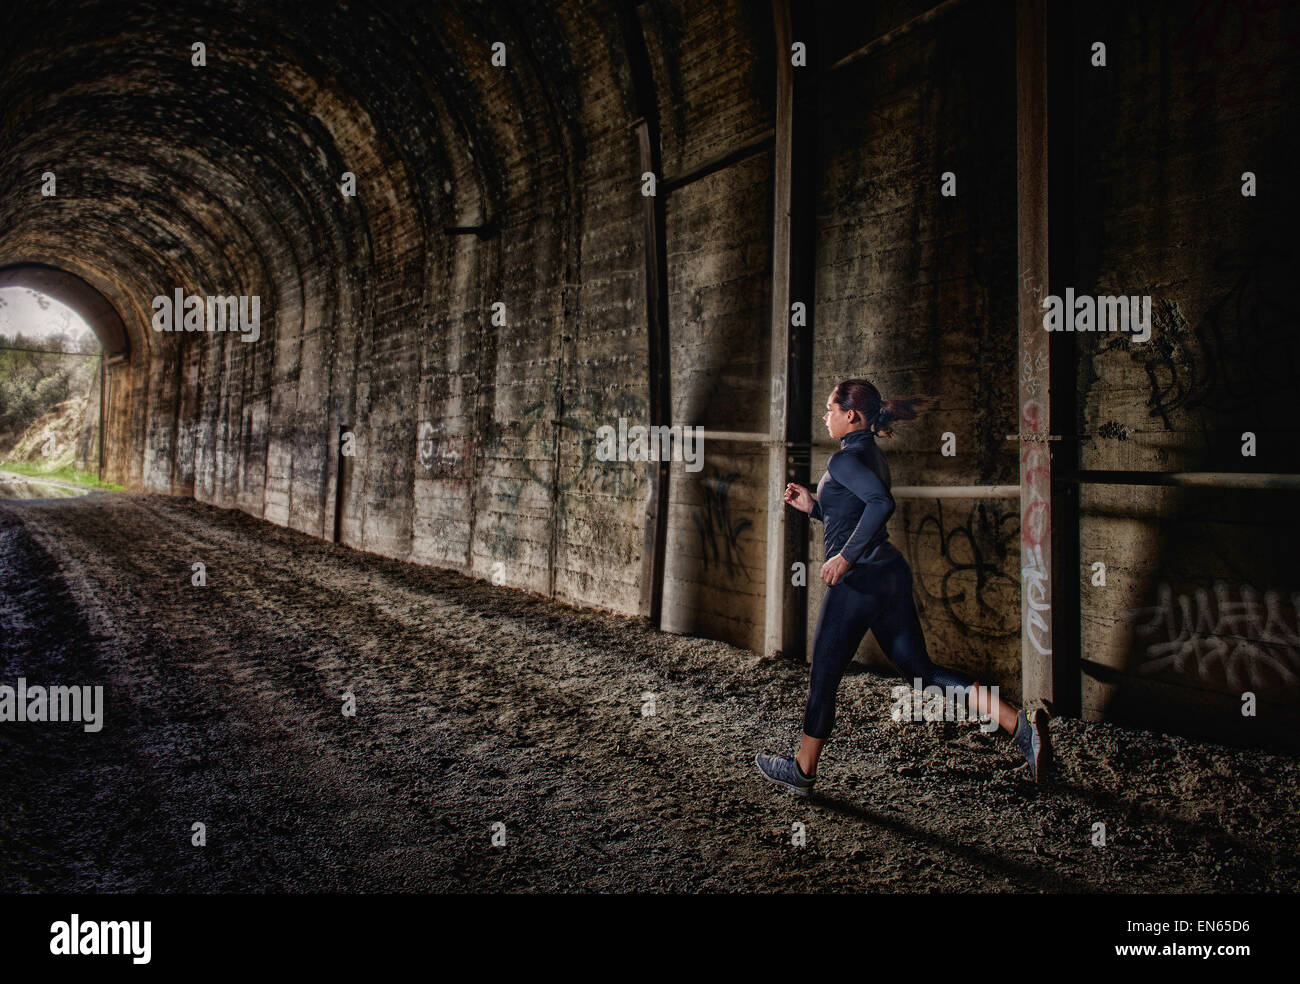 A young woman running through a tunnel as part of her morning fitness routine. - Stock Image